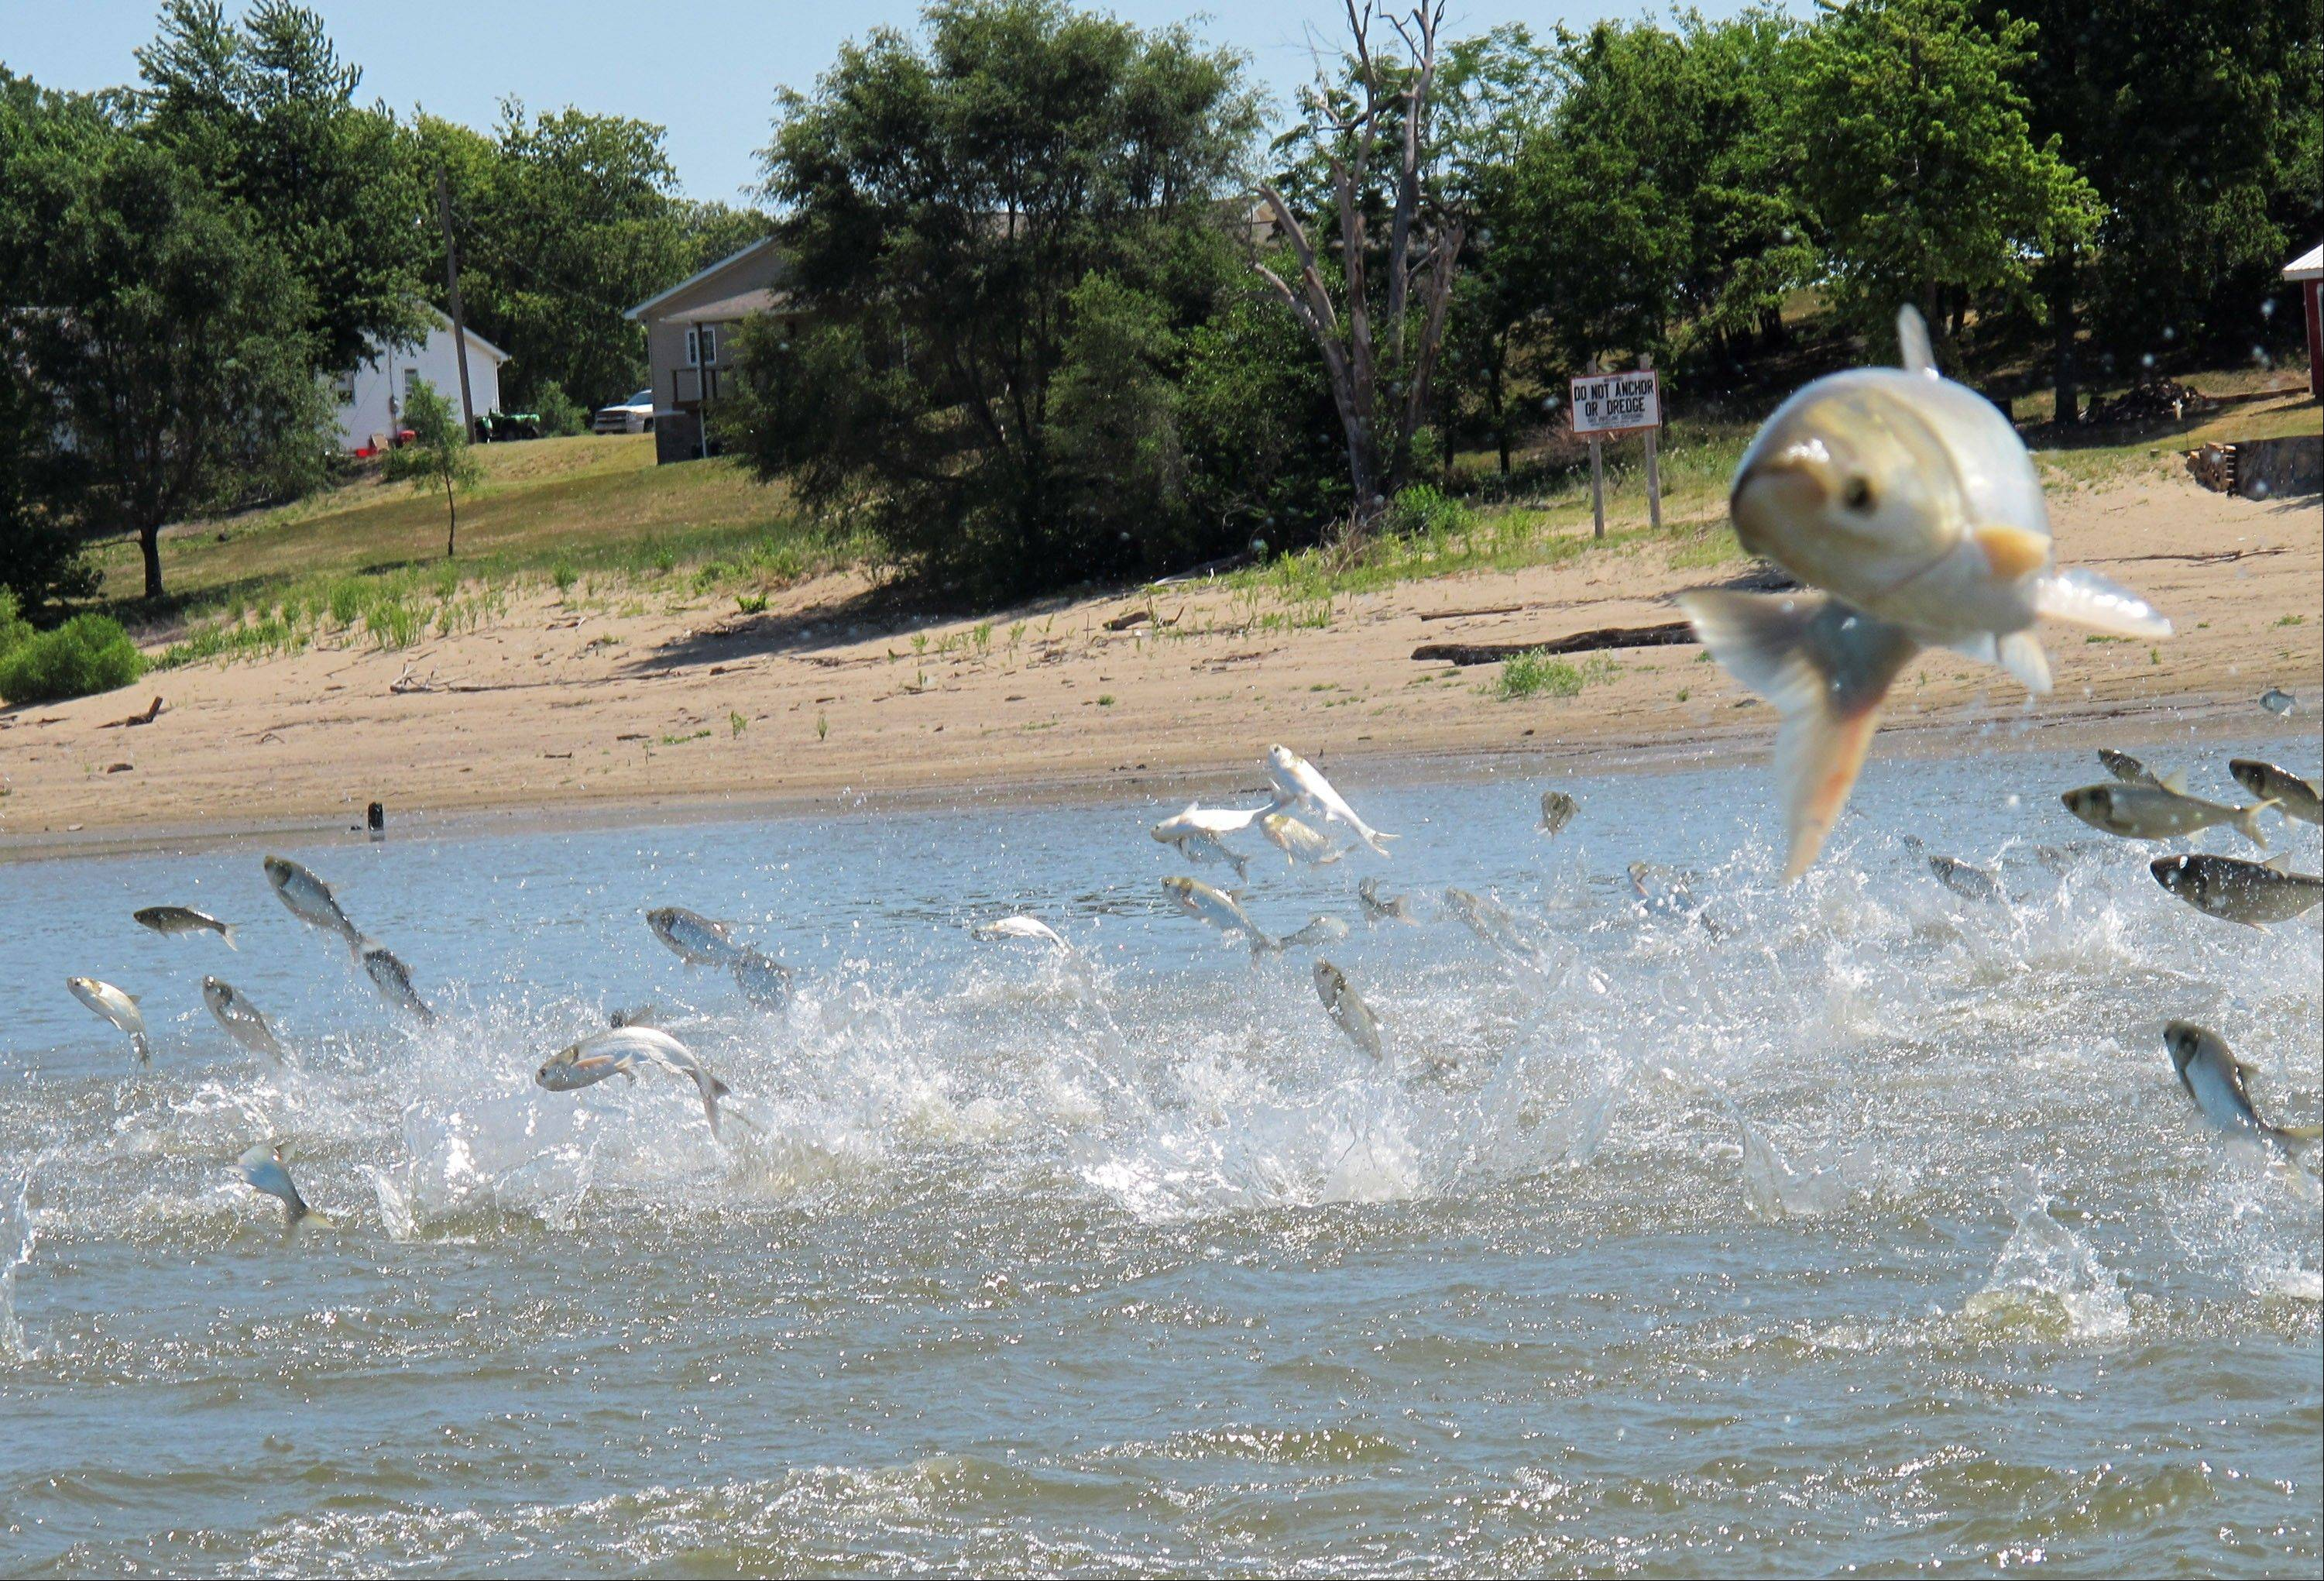 In this June 13, 2012, photo an Asian carp, jolted by an electric current from a research boat, jumps from the Illinois River near Havana, Ill., during a study on the fish's population. The U.S. Army Corps of Engineers released a report Monday years in the making, about options for keeping Asian carp from invading the Great Lakes. The report focuses on the Chicago Area Waterway System and its network of rivers and canals that provide a direct link between Lake Michigan and the Mississippi River.